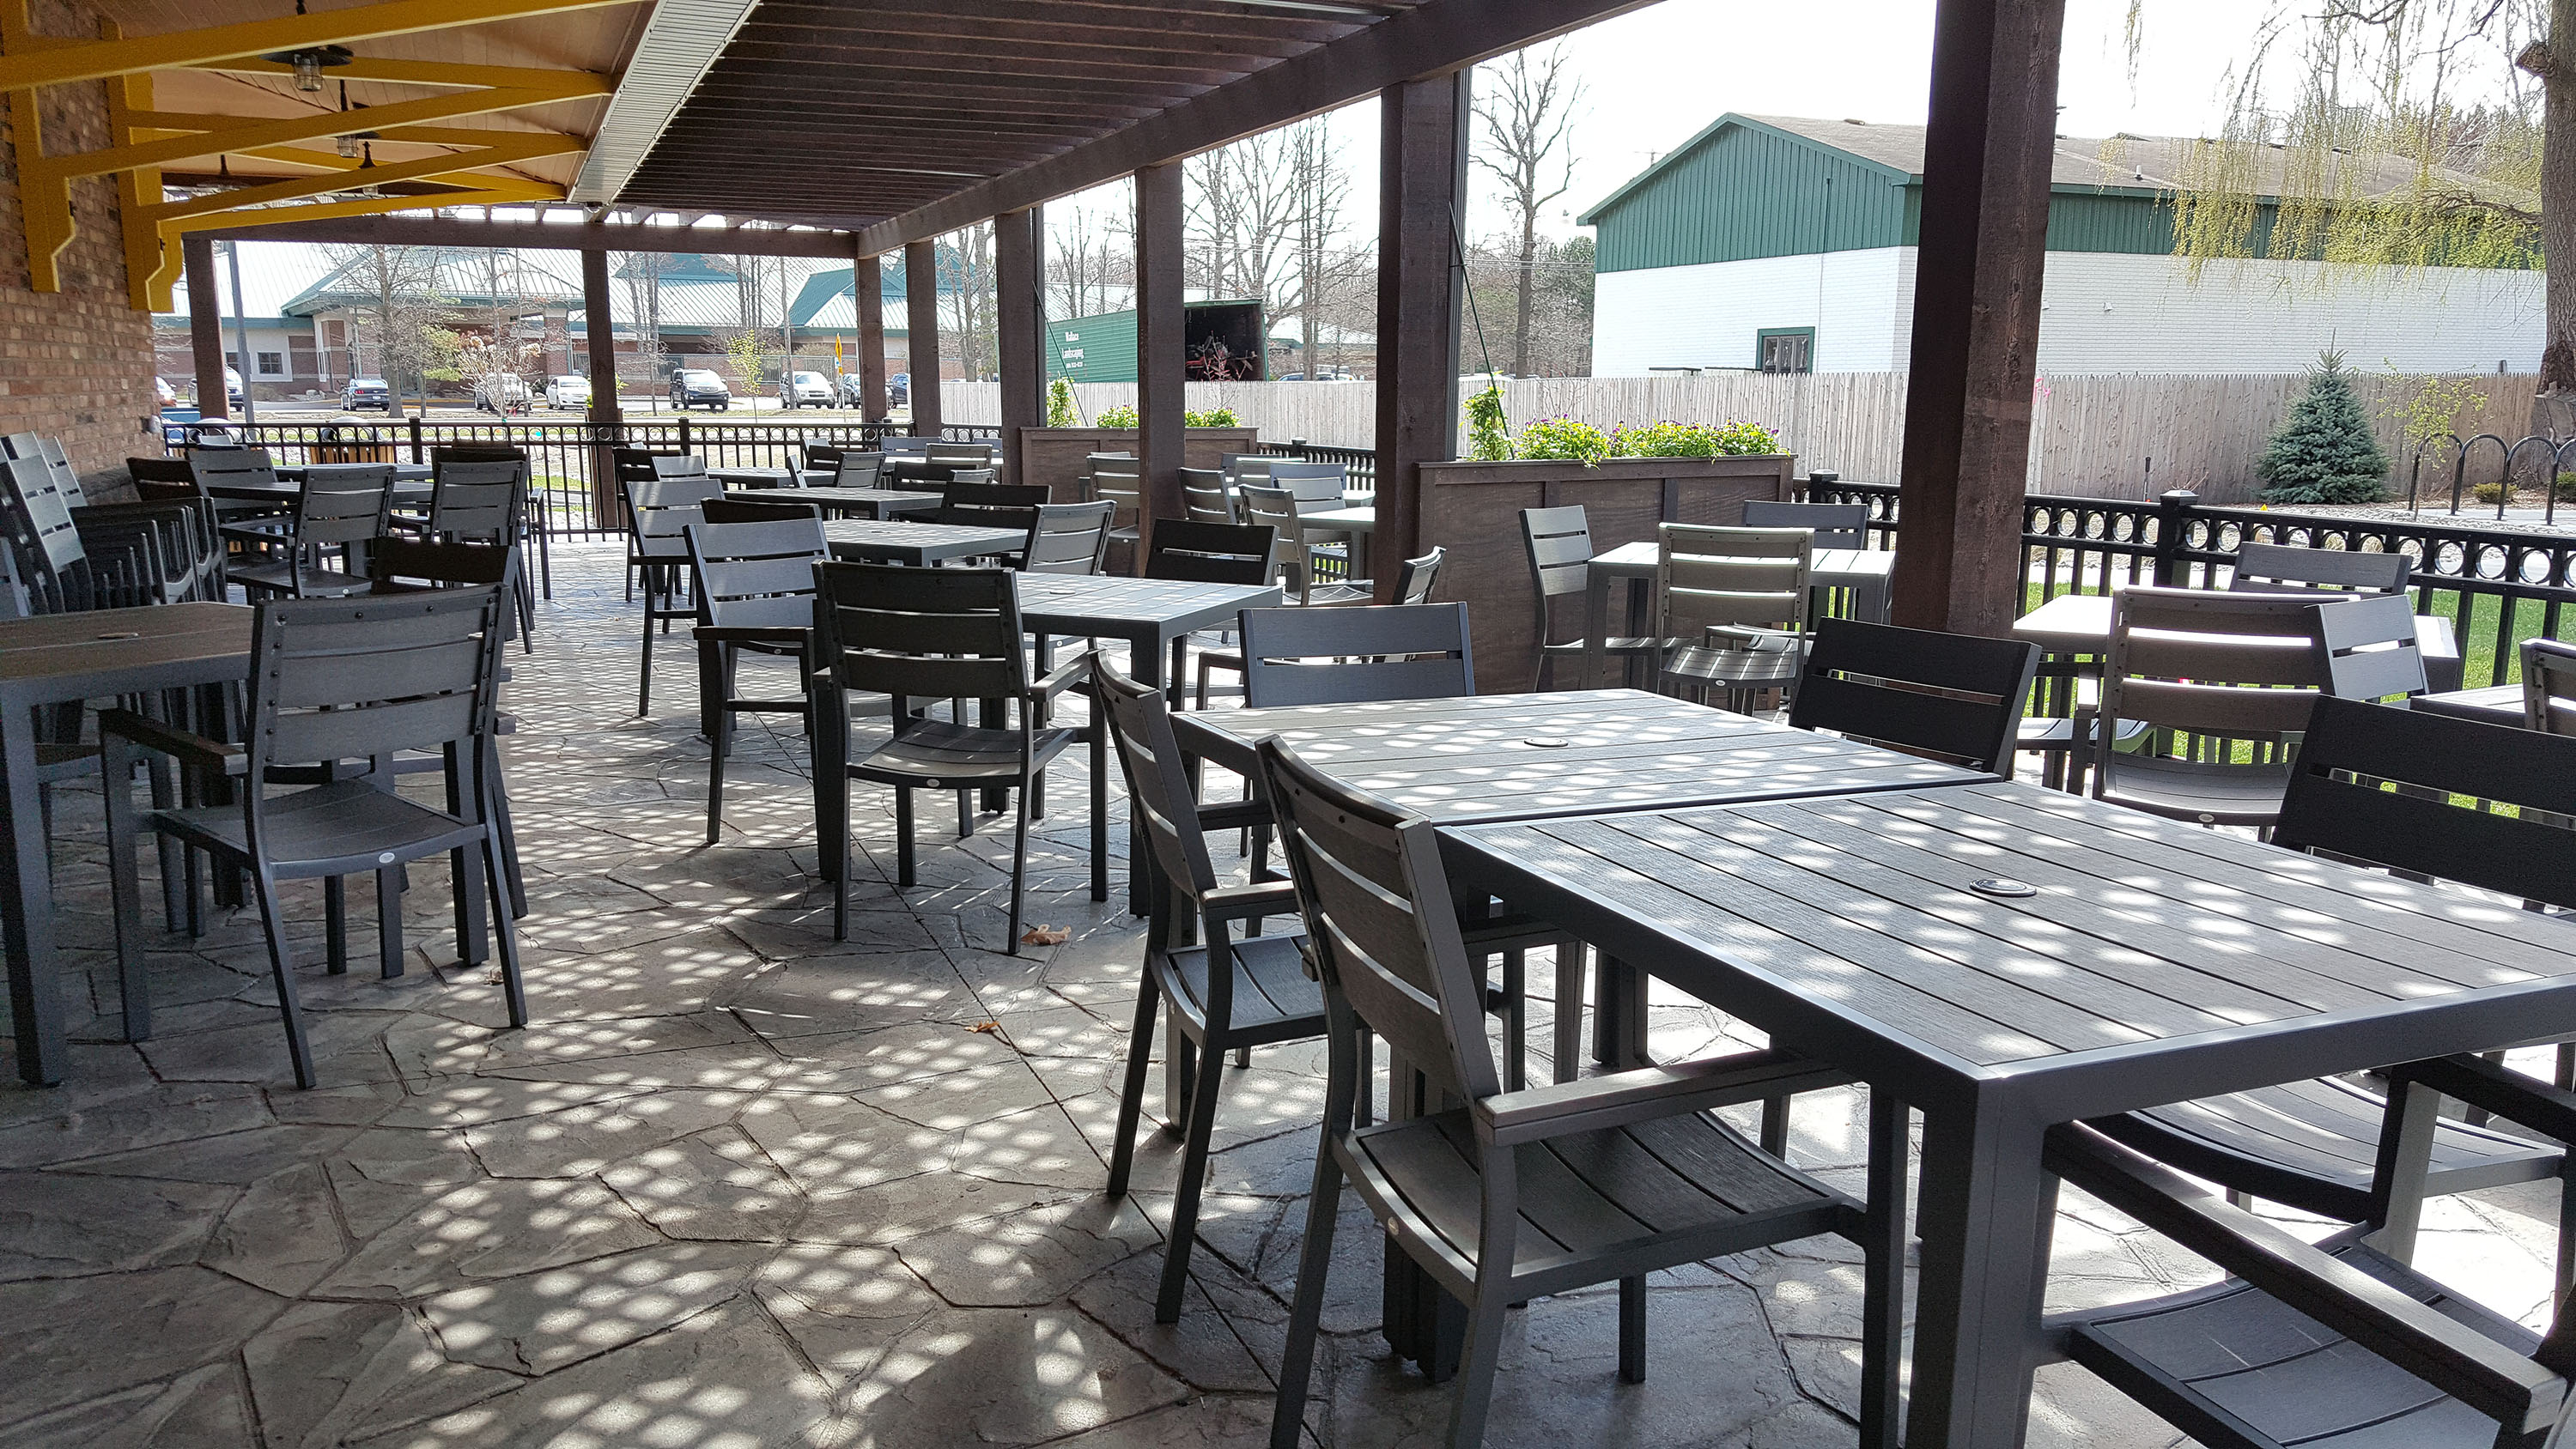 Midland Brewing Company Opening Outdoor Beer Garden Patio And Event Space  April 28 | Brewbound.com